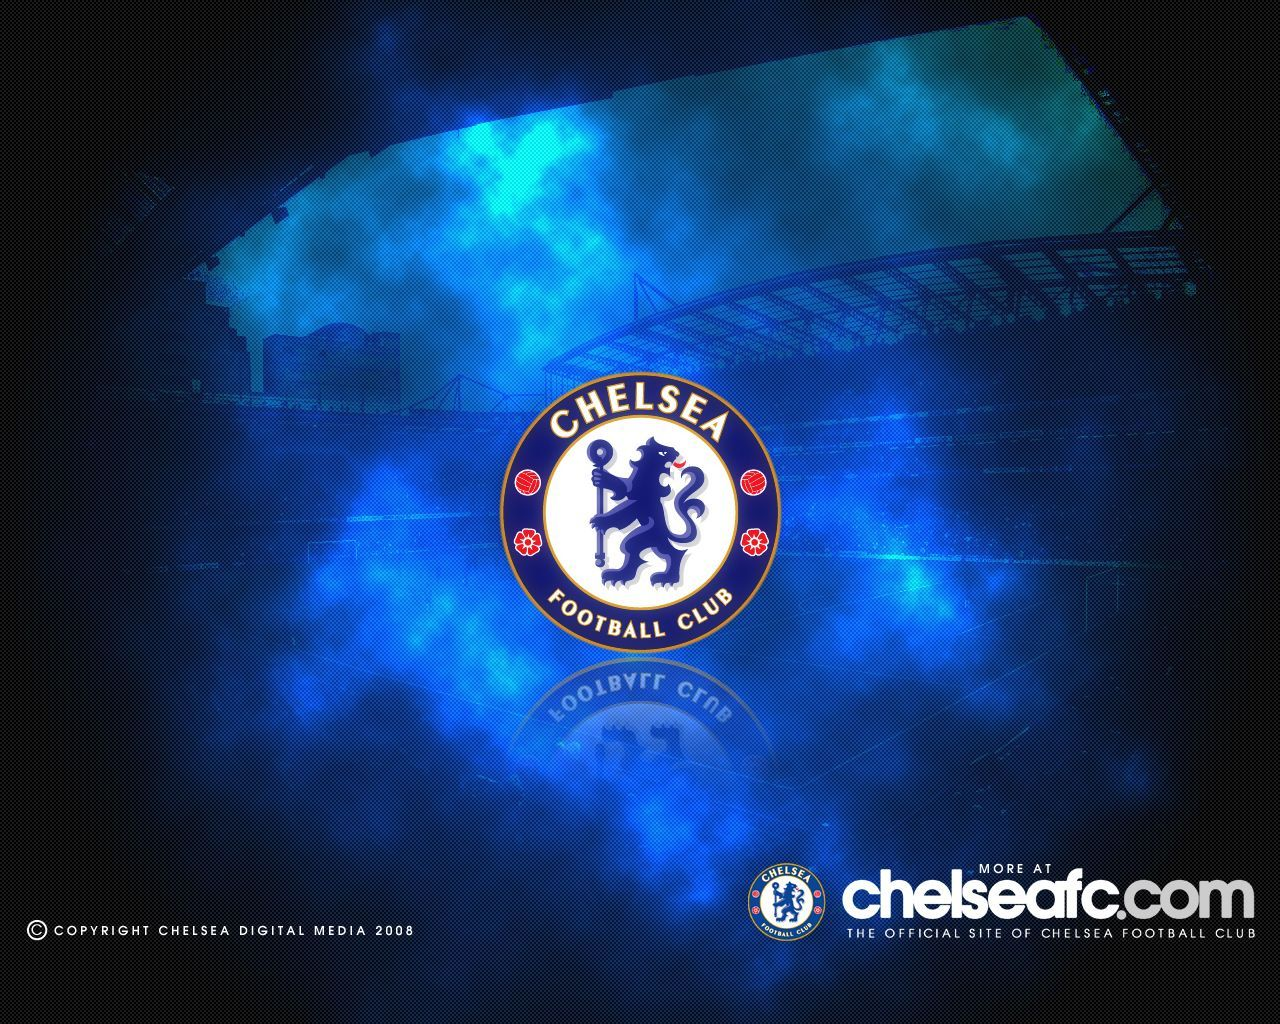 Hd chelsea fc logo wallpapers hd wallpapers pinterest chelsea hd chelsea fc logo wallpapers voltagebd Gallery